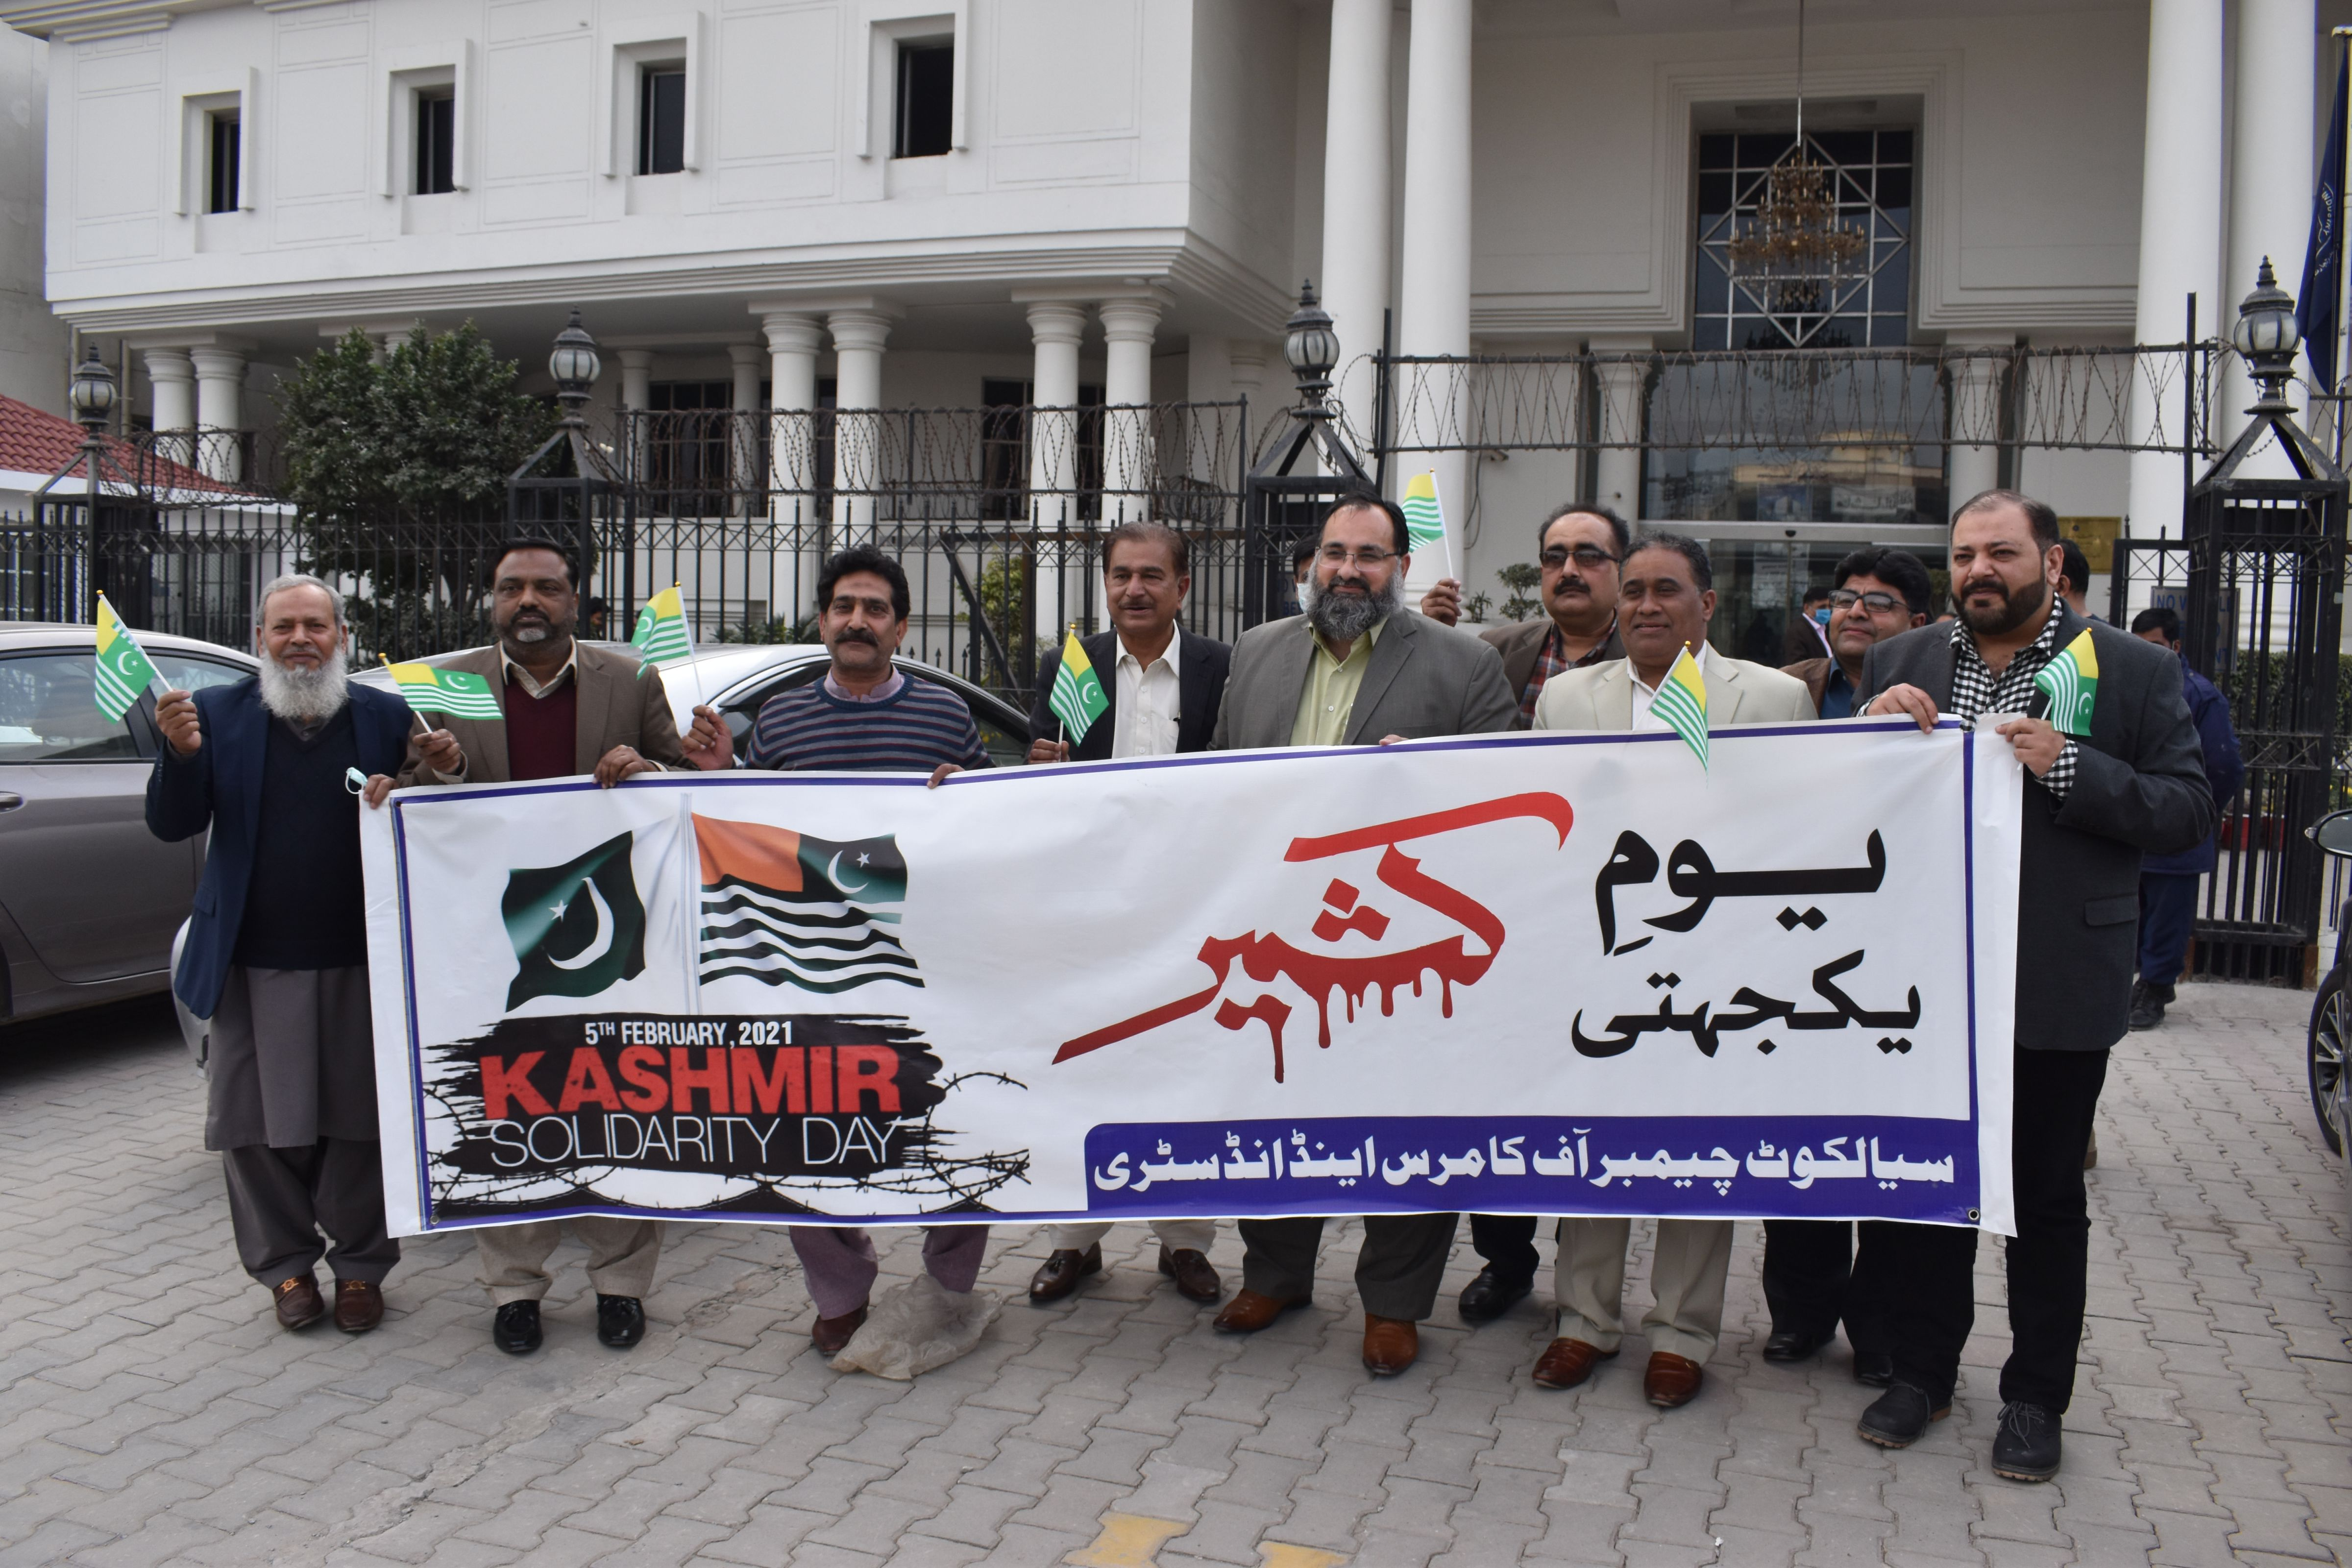 Kashmir Solidarity Day organized by Departmental Committee on Religious & Cultural Affairs